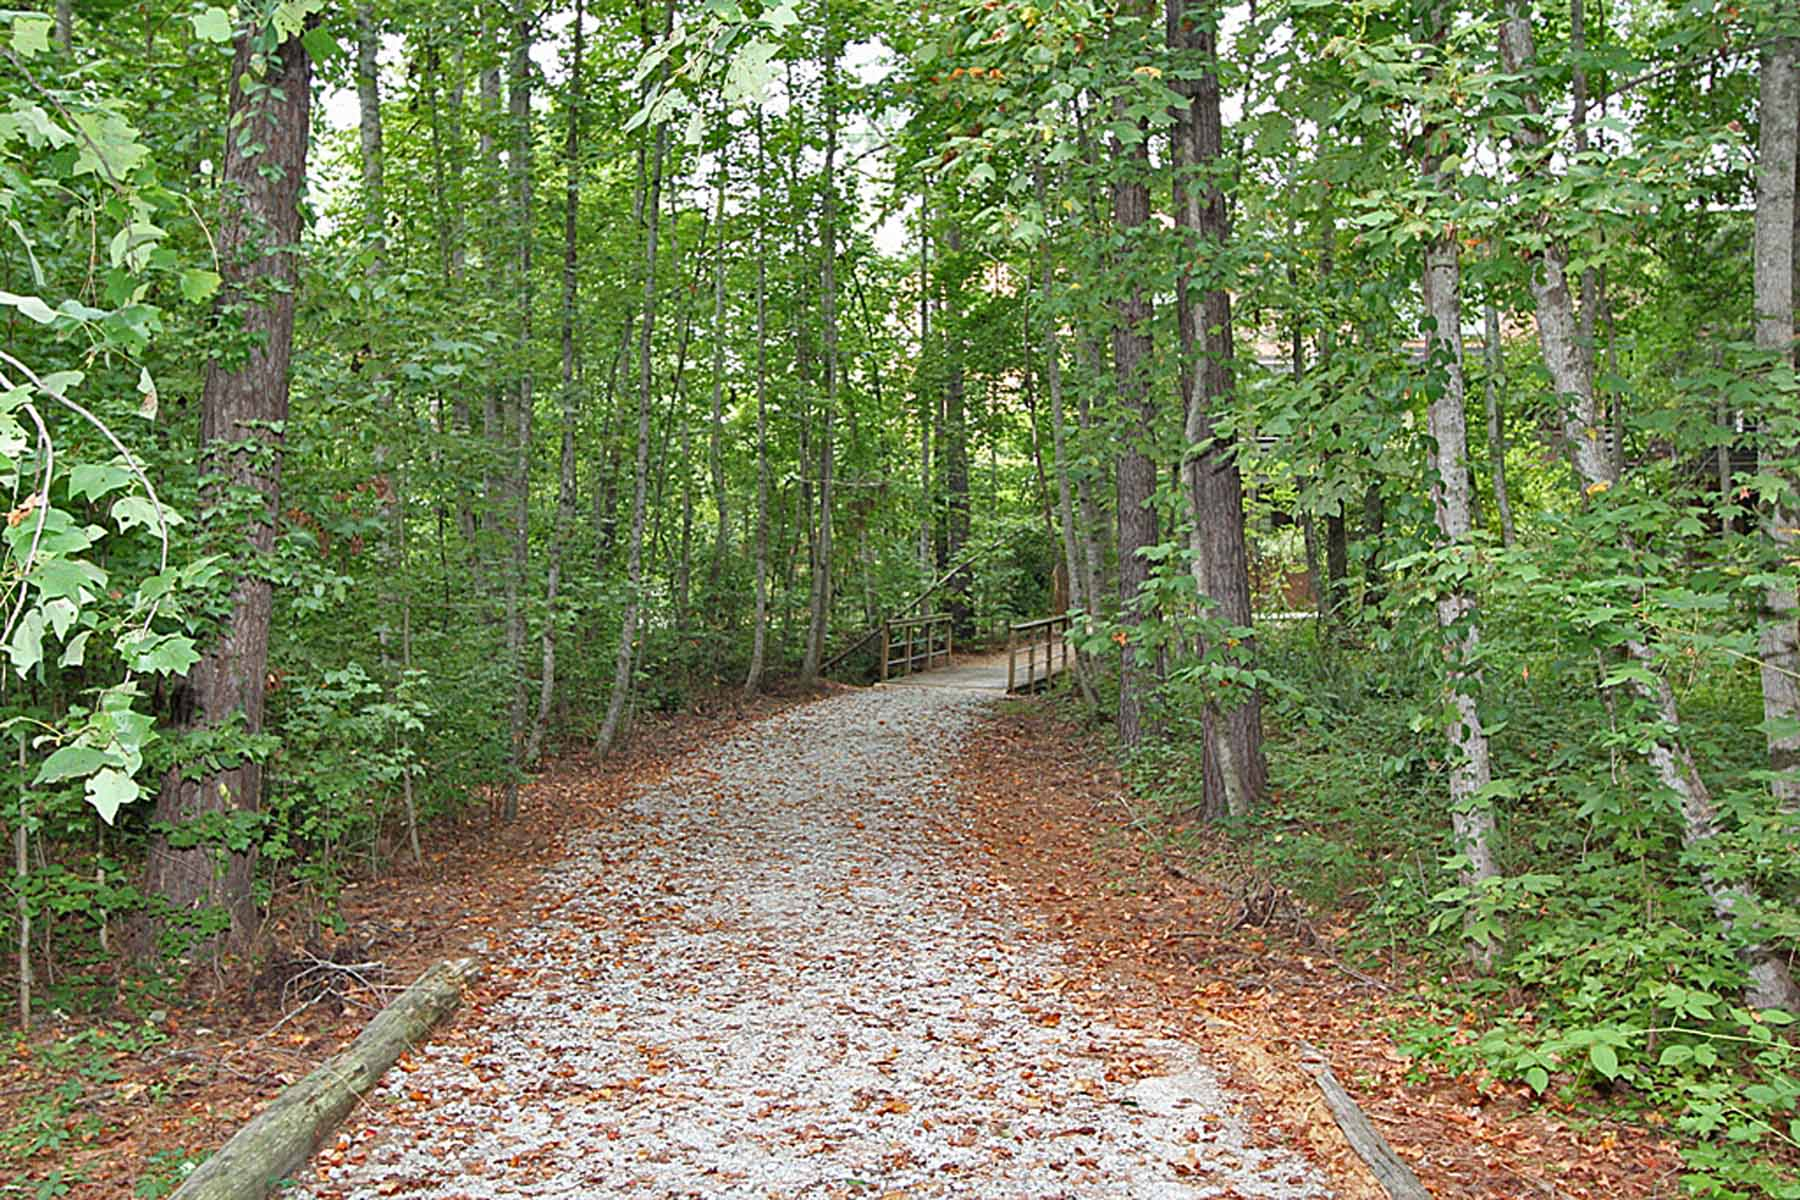 Terreno por un Venta en Wooded Lot in Serenbe Community 10703 Serenbe Lane Lot 159 Chattahoochee Hills, Georgia, 30268 Estados Unidos